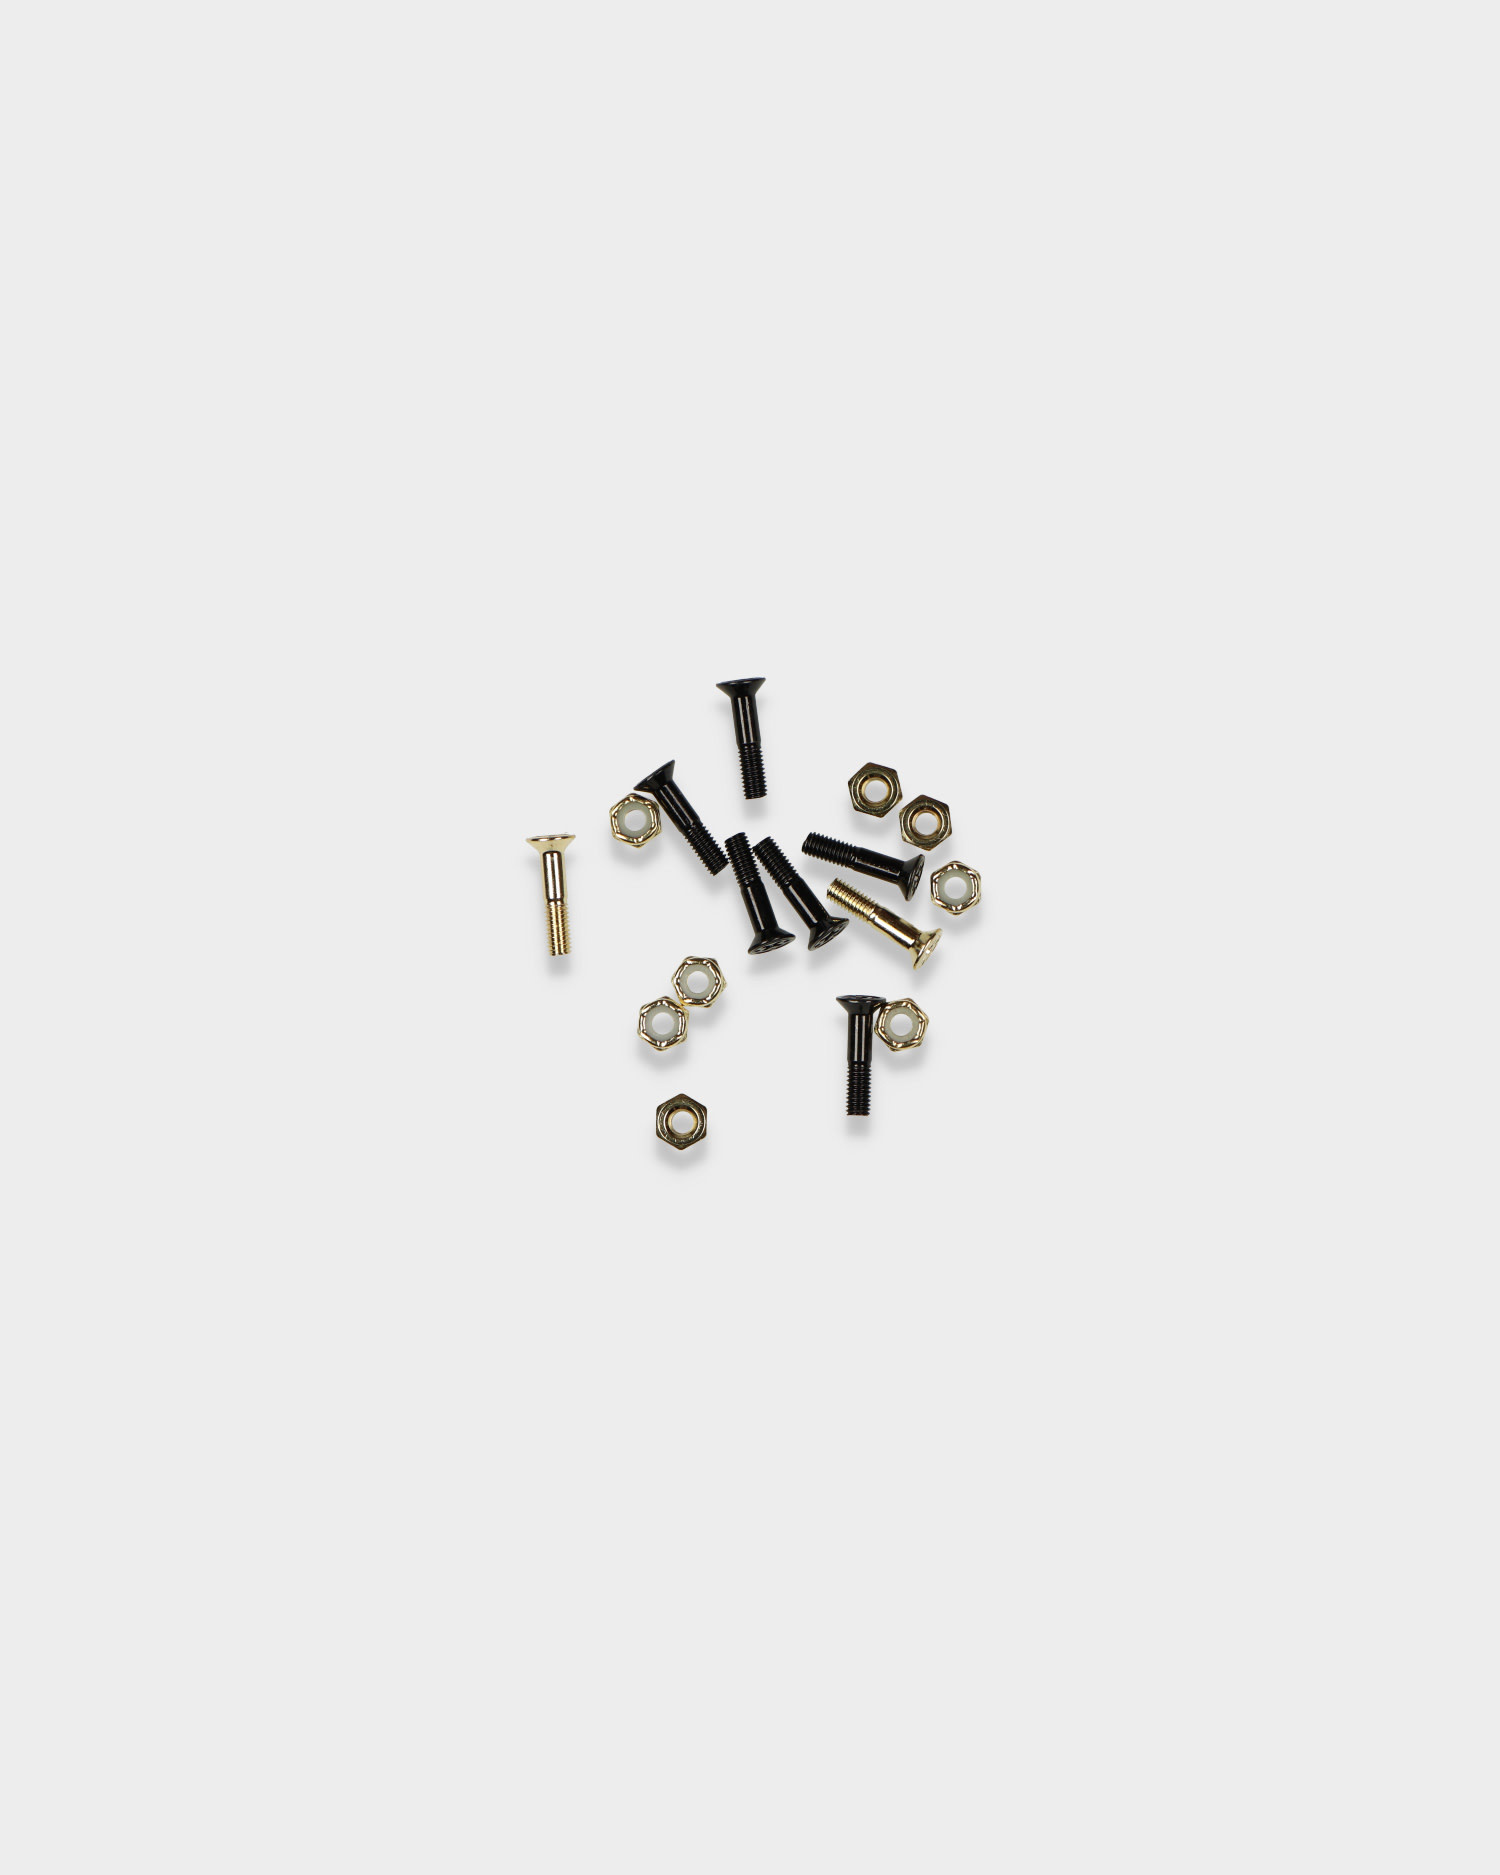 Independent Cross Philips 7/8 inch Bolts Black/Gold